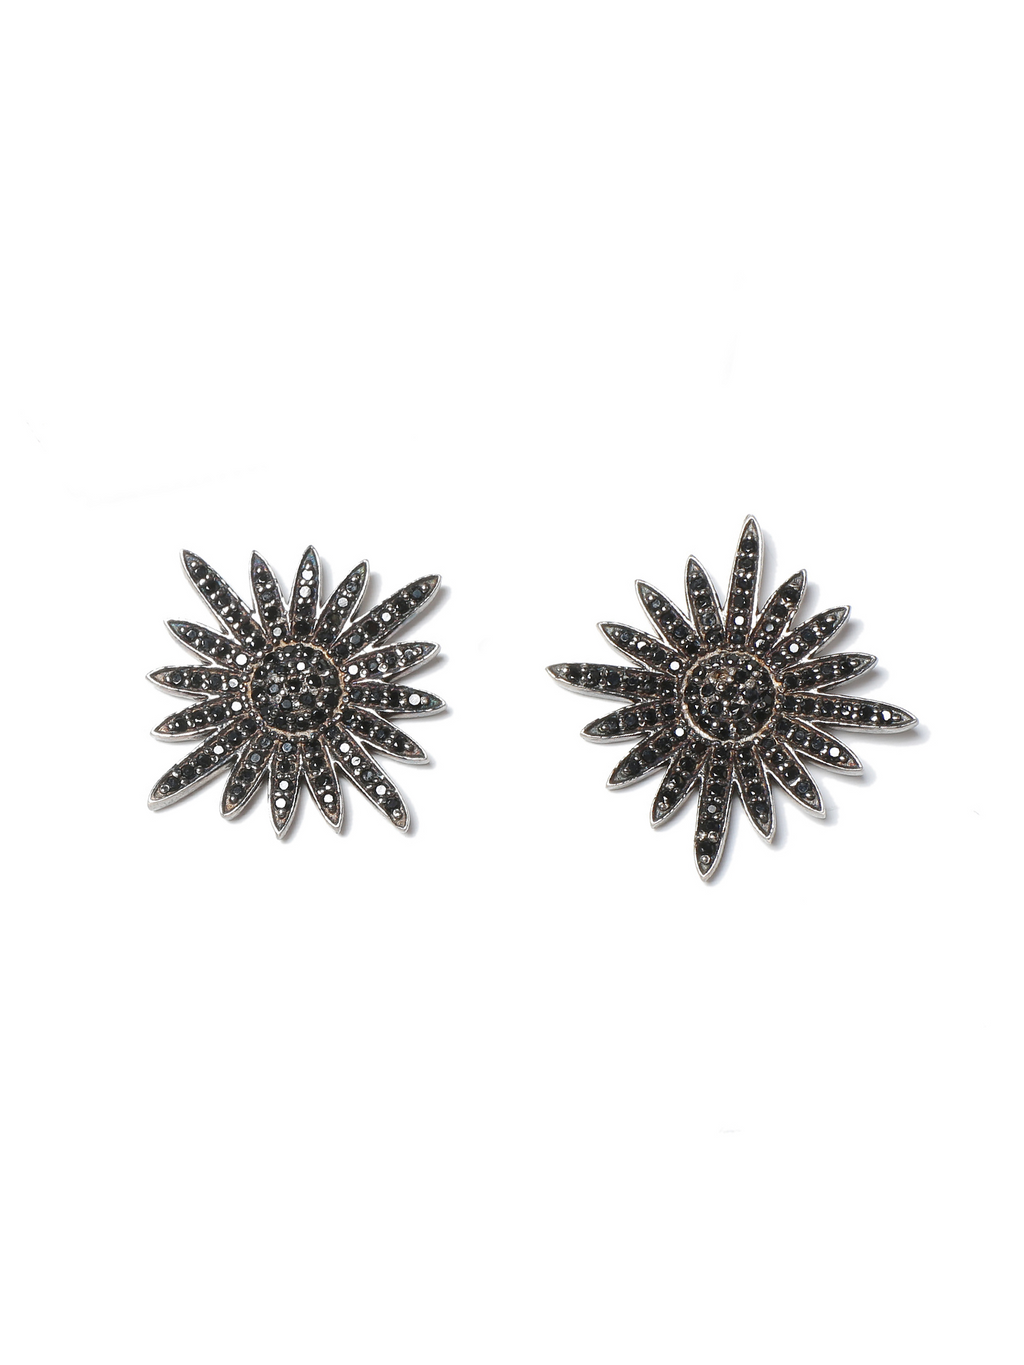 Margo Morrison Black Spinel Sunburst Stud Earrings